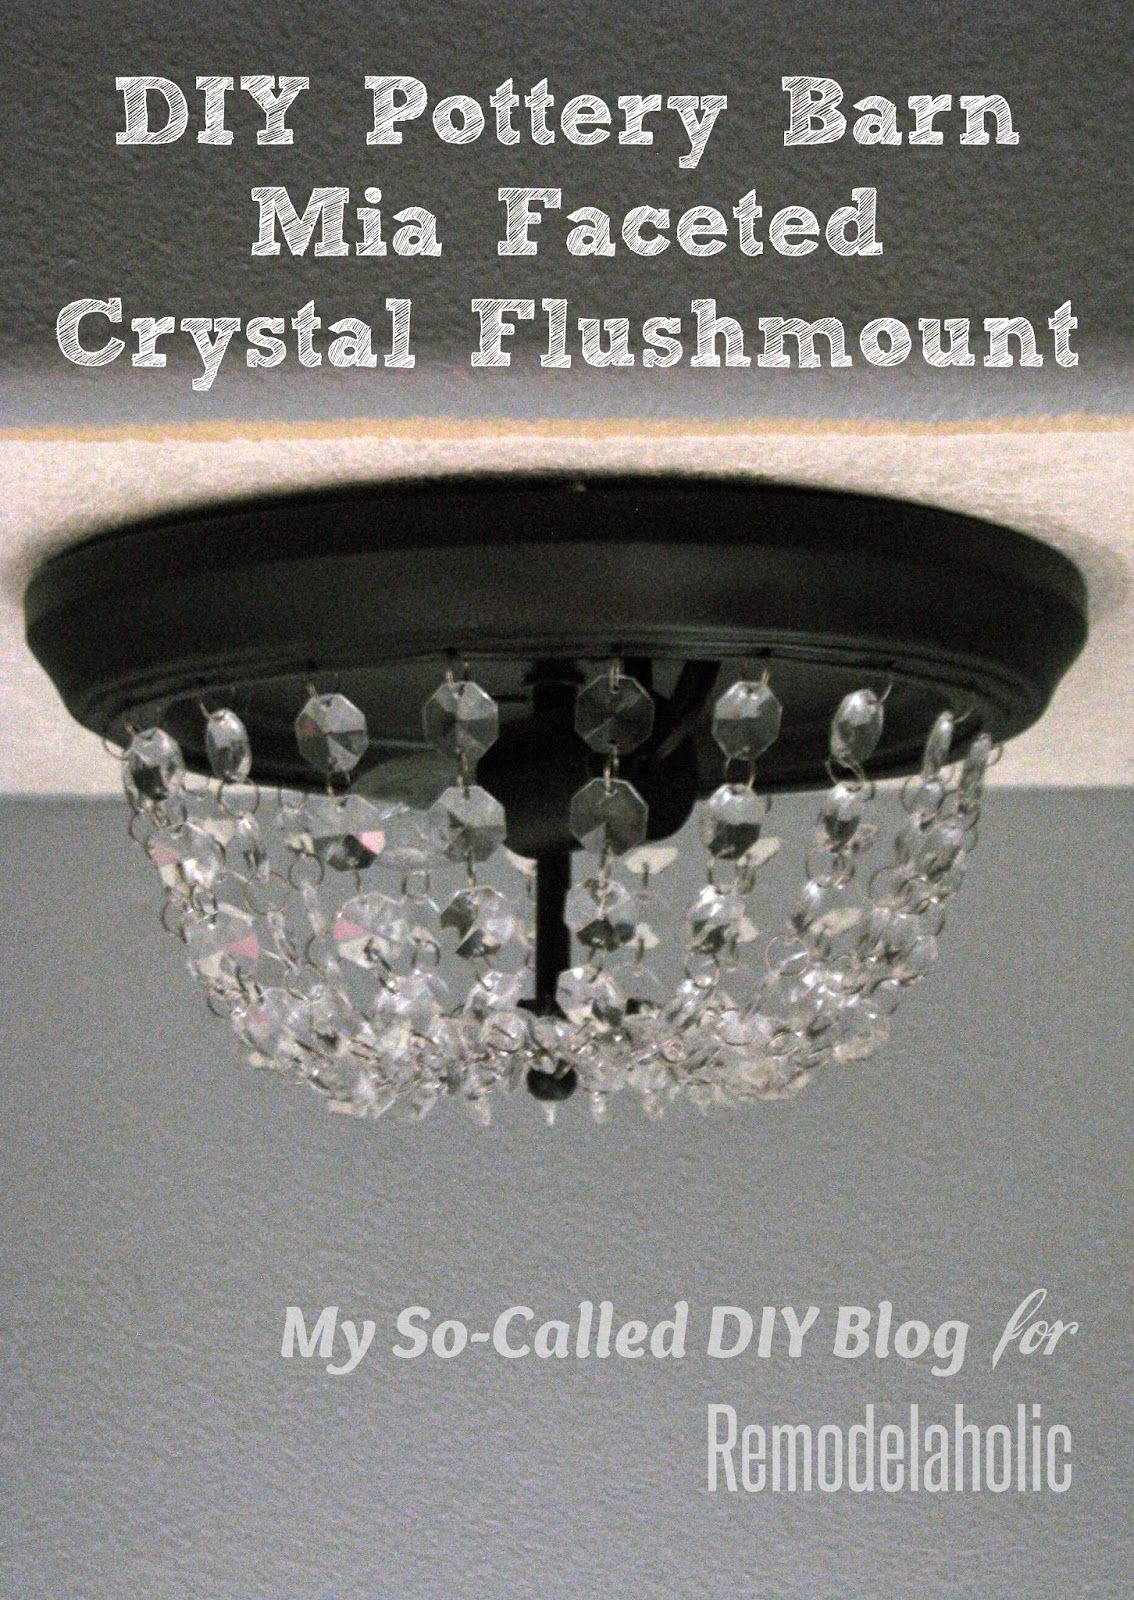 My So Called Diy Blog Light On Remodelaholic